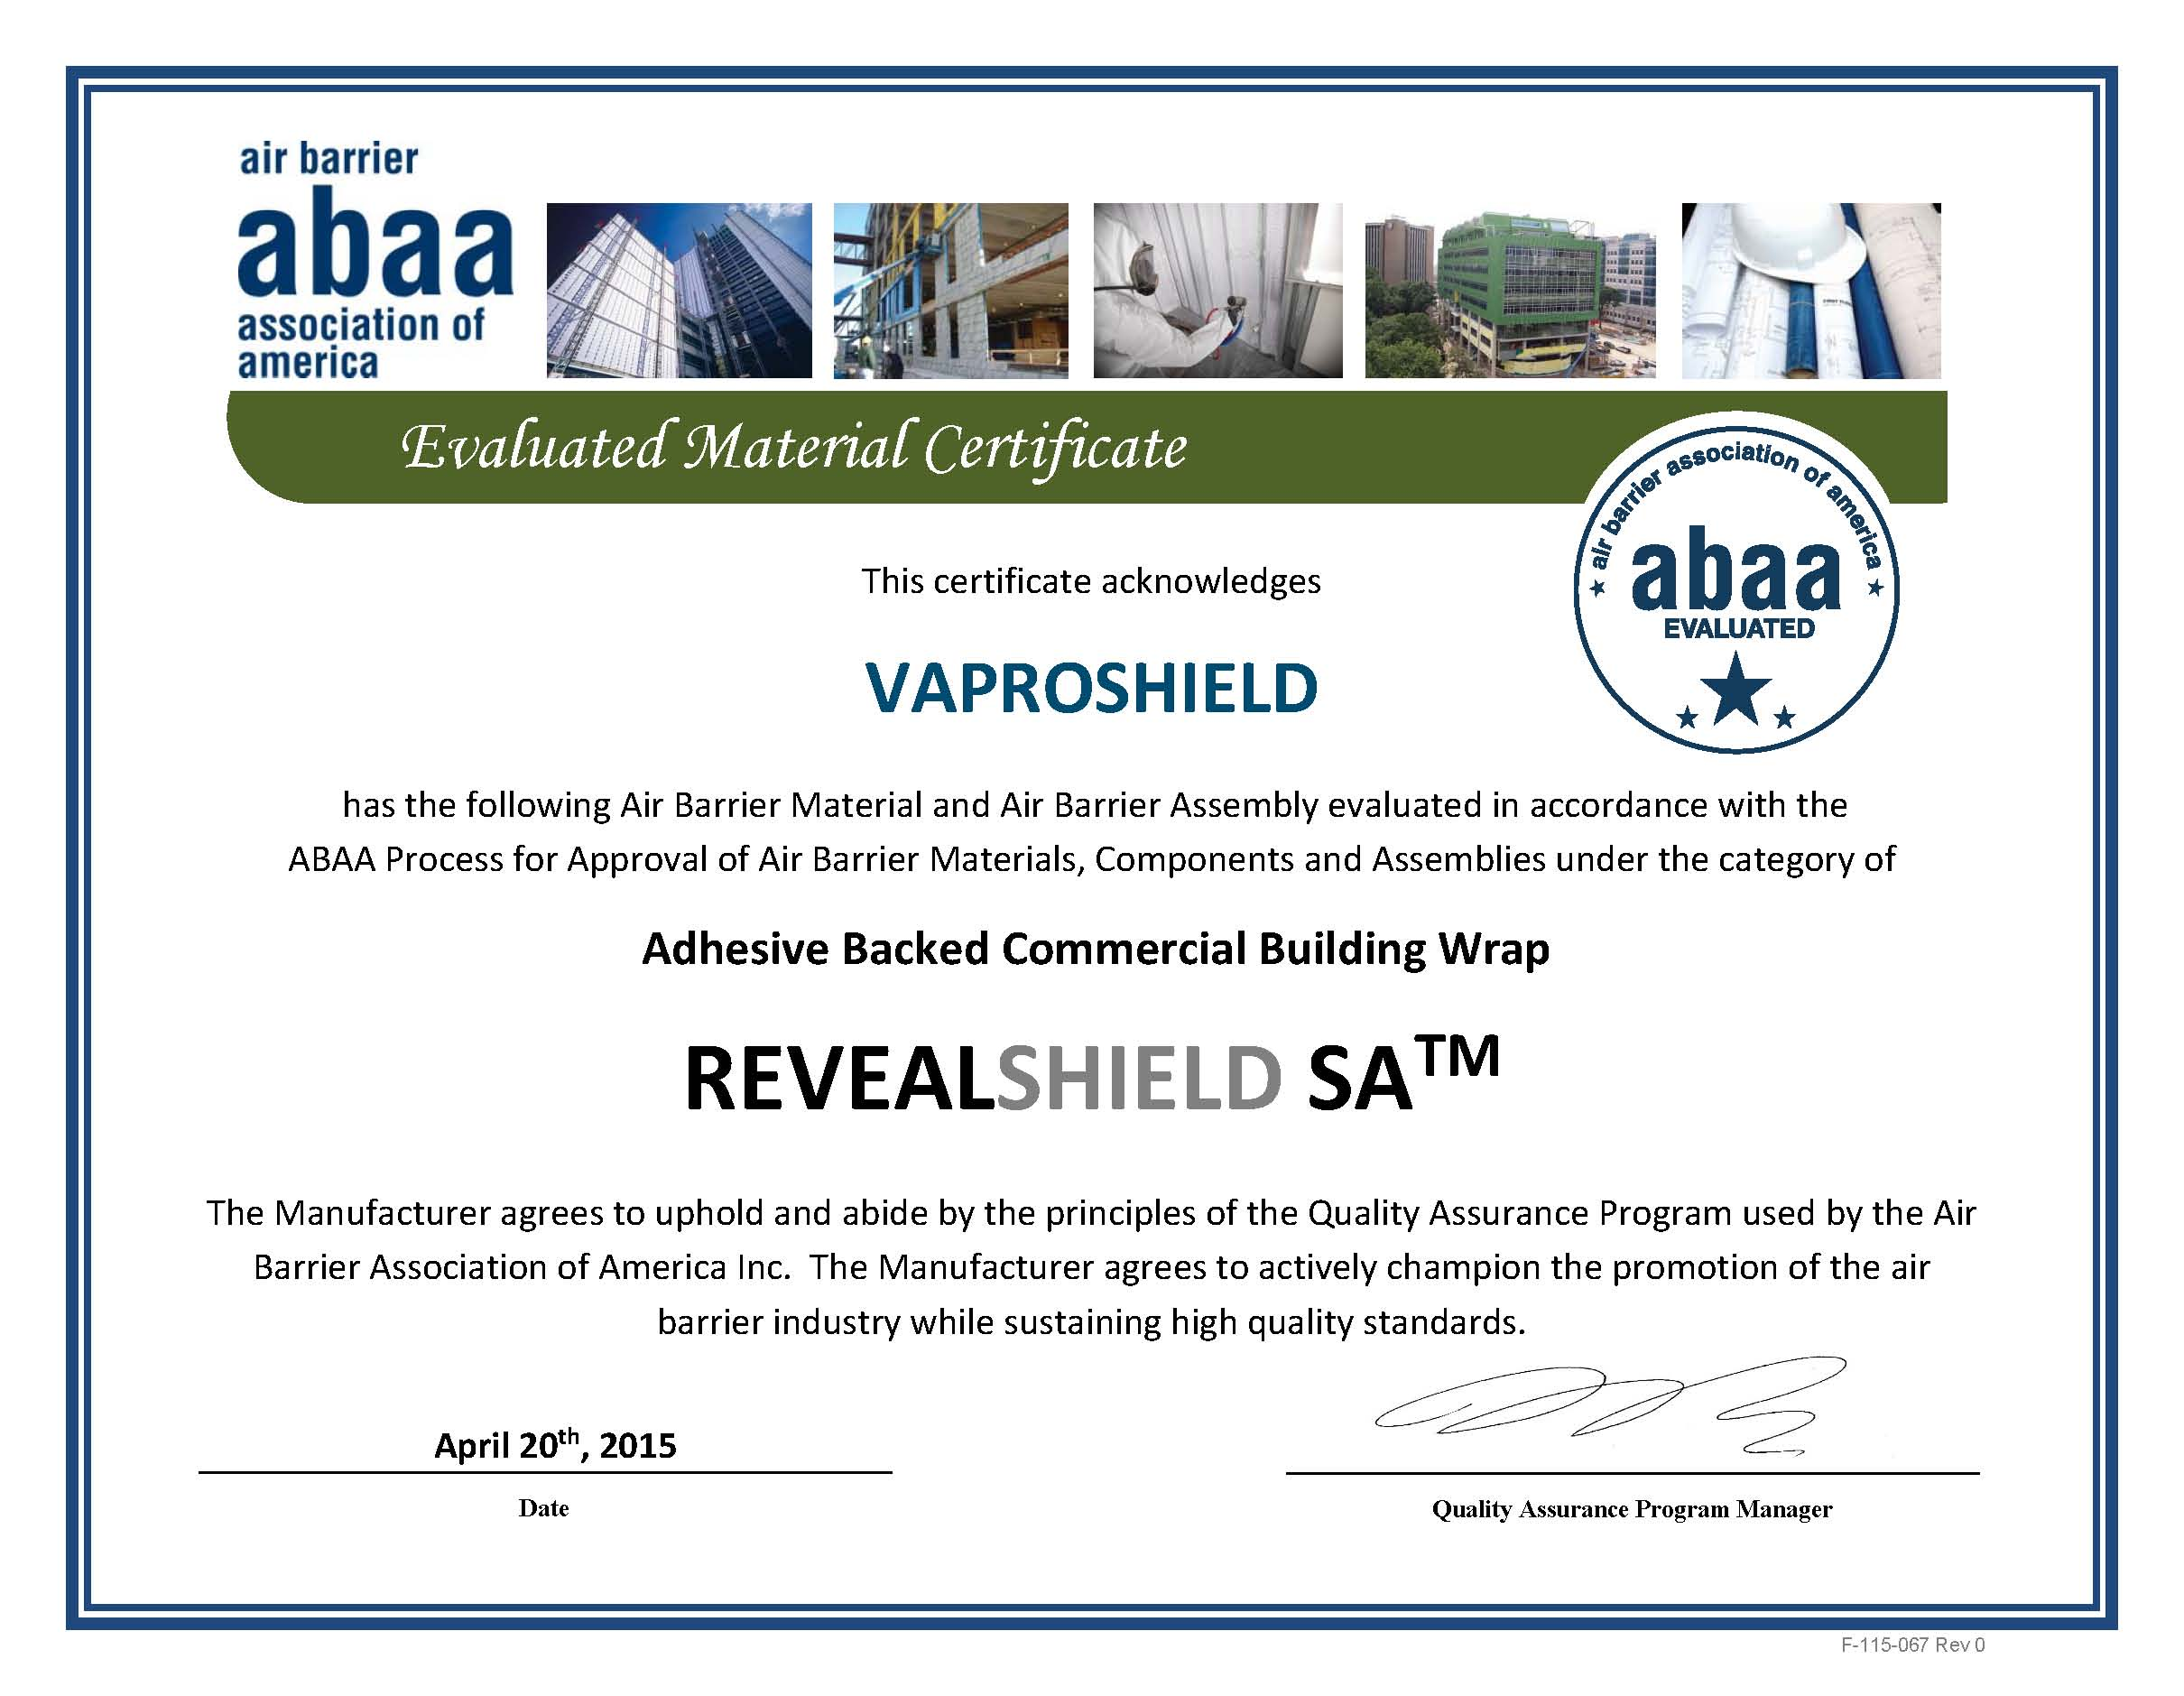 ABAA Air Barrier Material Evaluated Certificate vaproshield revealshield